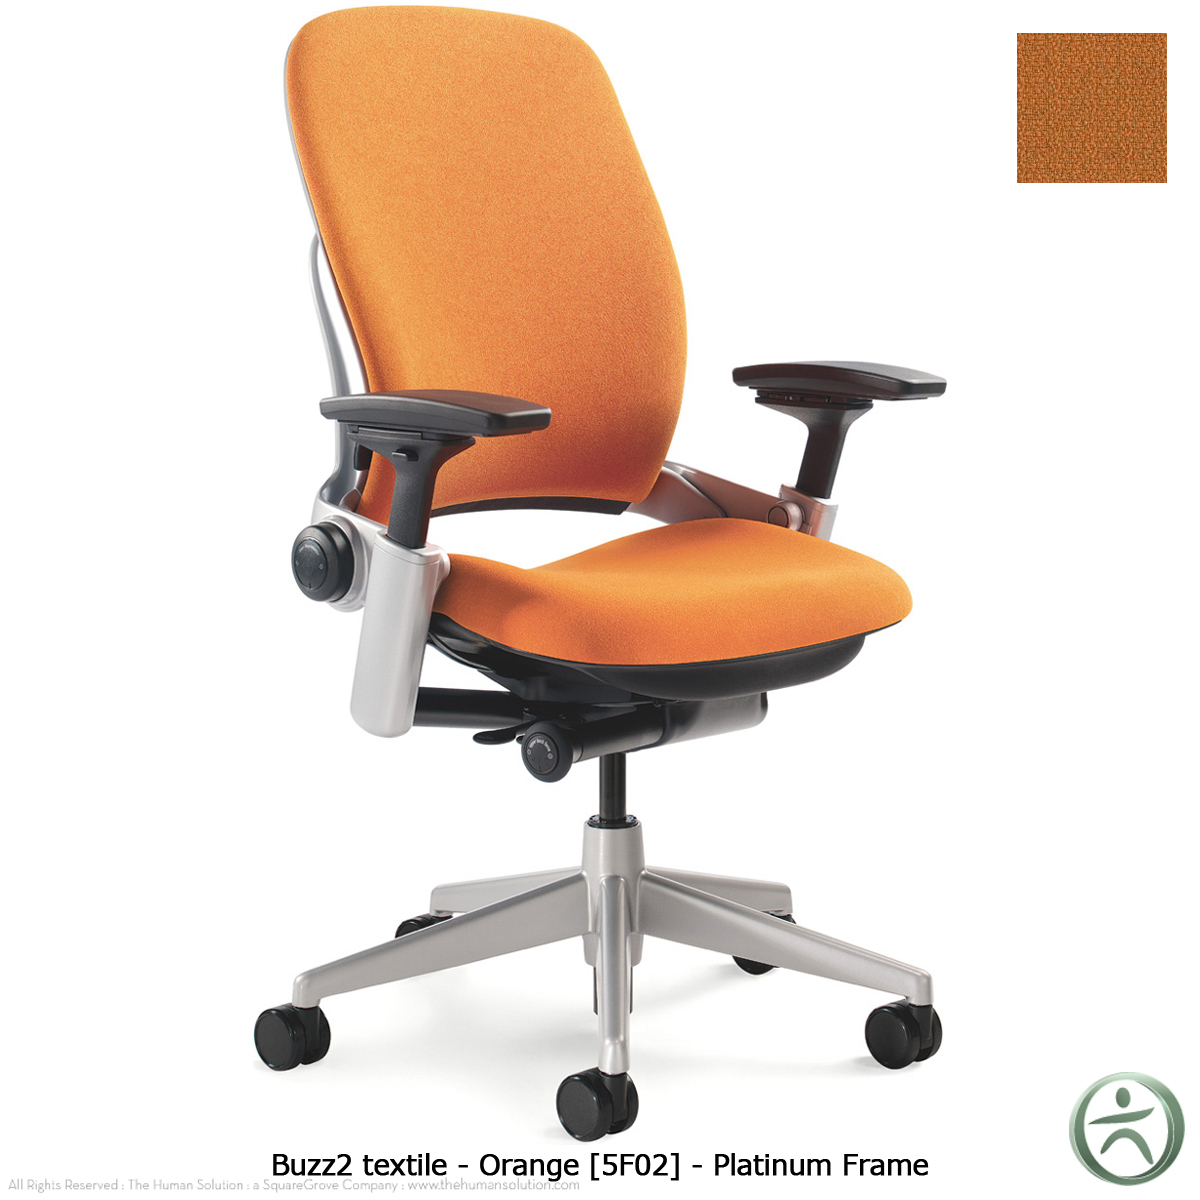 Steelcase leap ergonomic office chair 28 images leap ergonomic desk chairs by steelcase - Ergo desk chairs ...